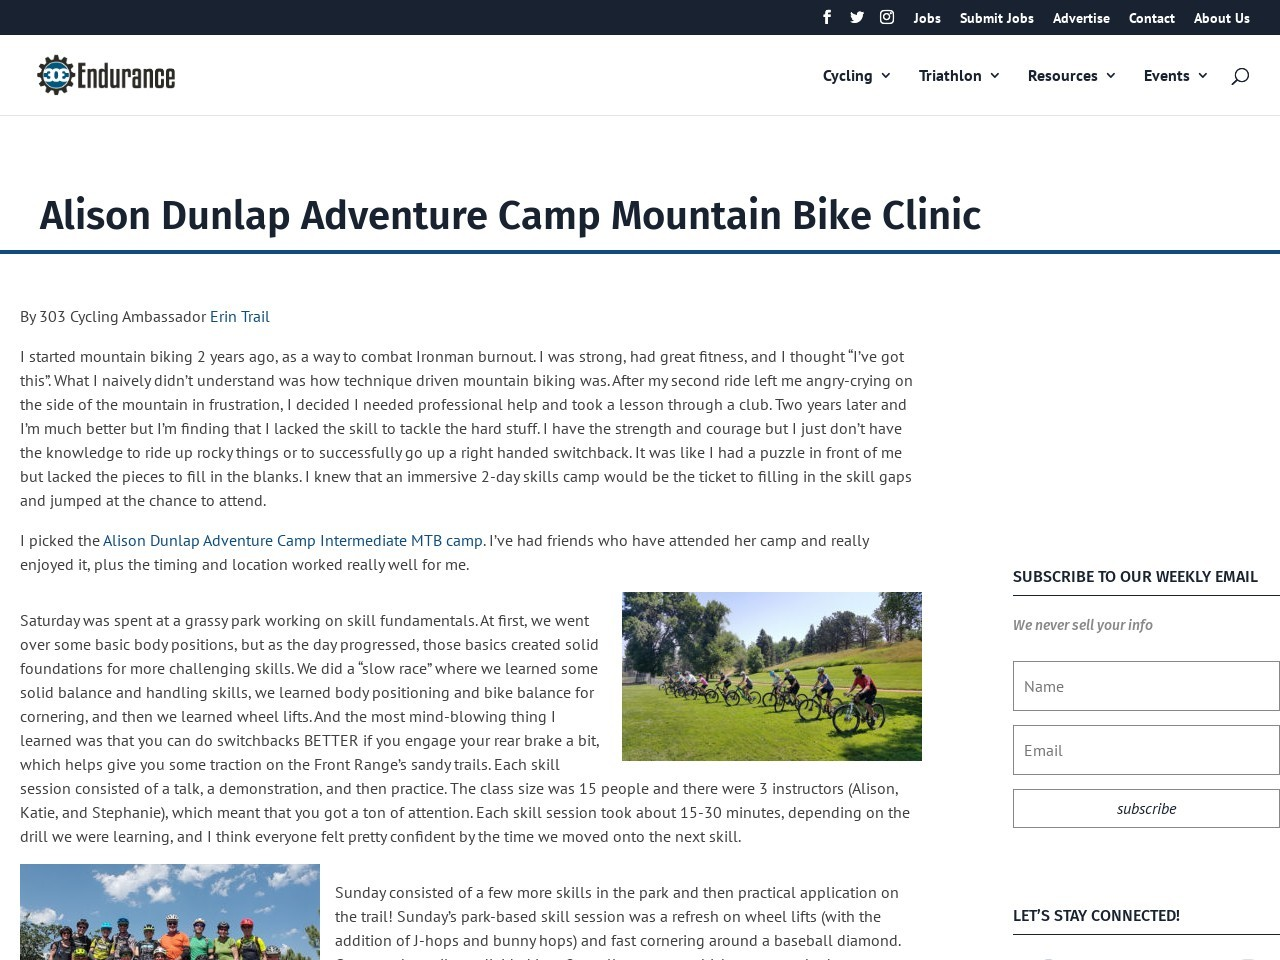 Alison Dunlap Adventure Camp Mountain Bike Clinic